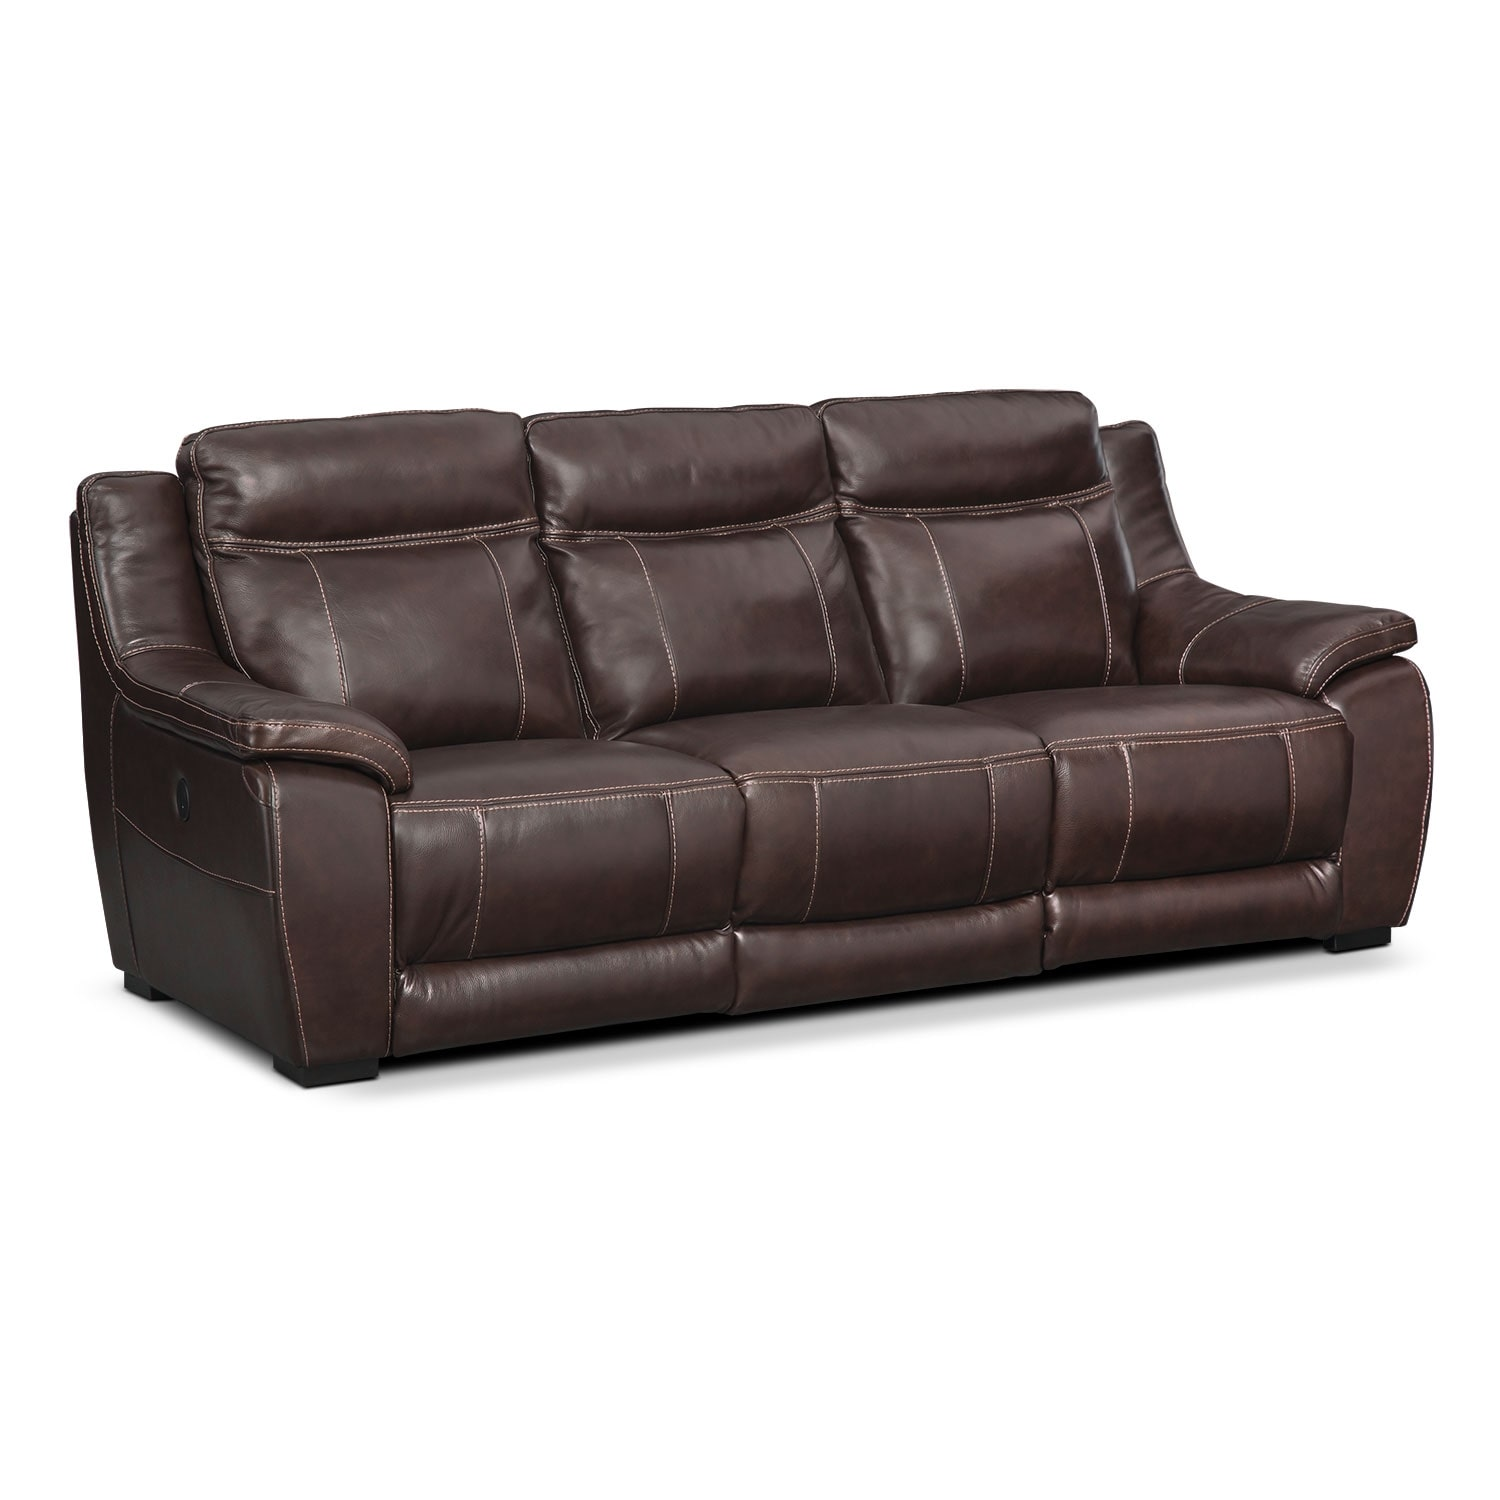 Hover to zoom  sc 1 st  Value City Furniture & Lido Power Reclining Sofa - Brown | Value City Furniture islam-shia.org